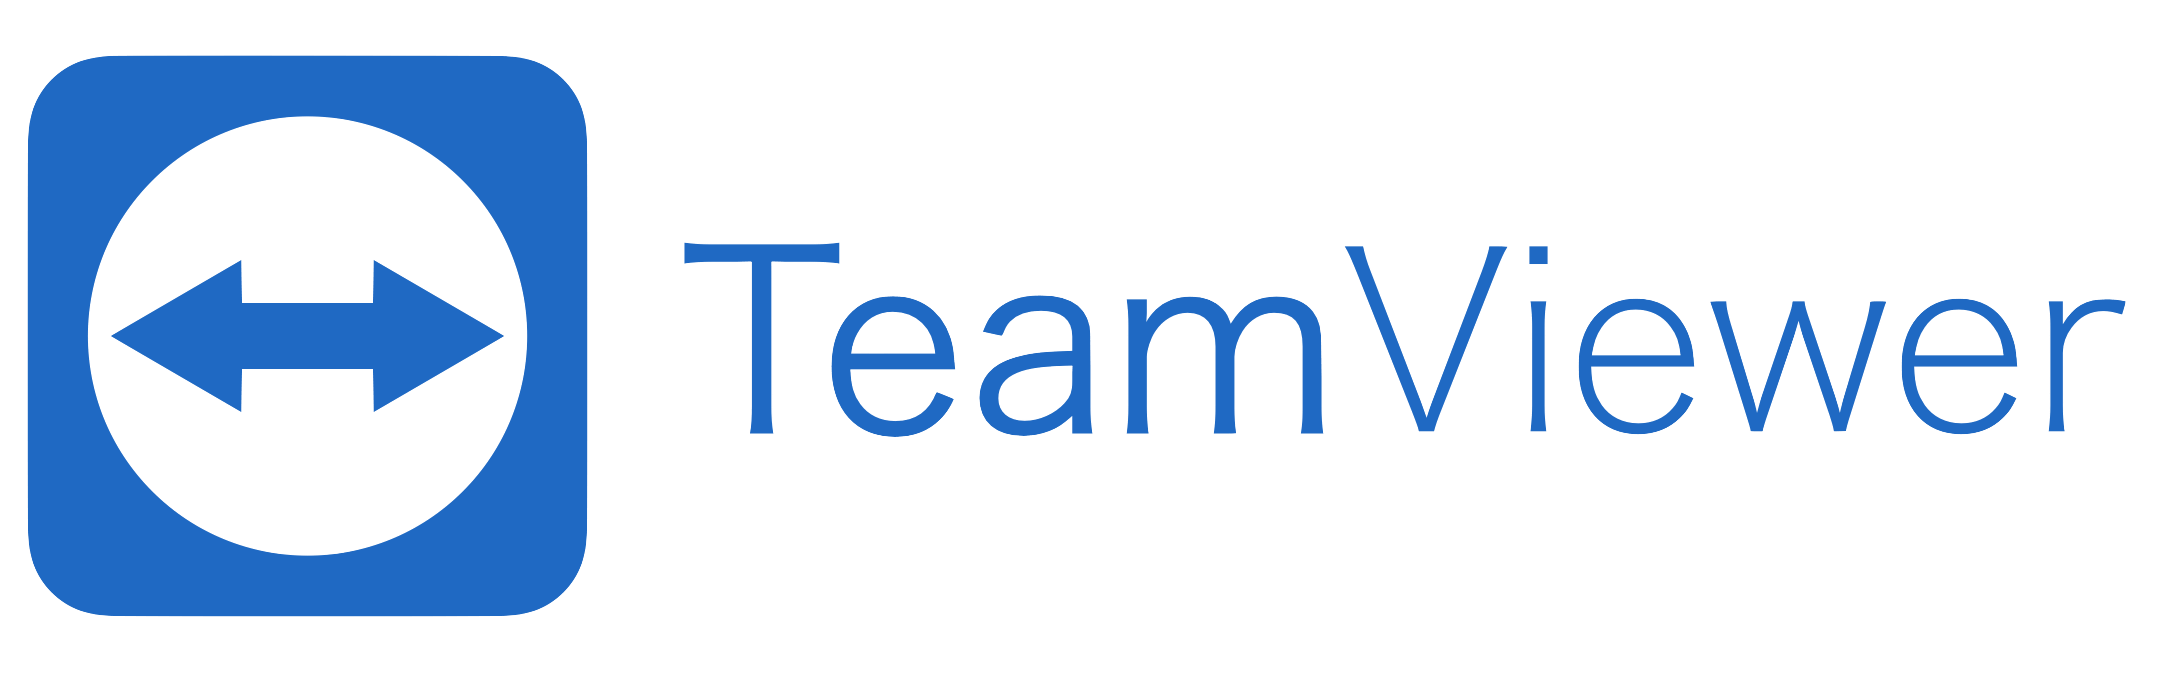 http://hypernovalabs.com/wp-content/uploads/2019/03/TeamViewer-logo.png